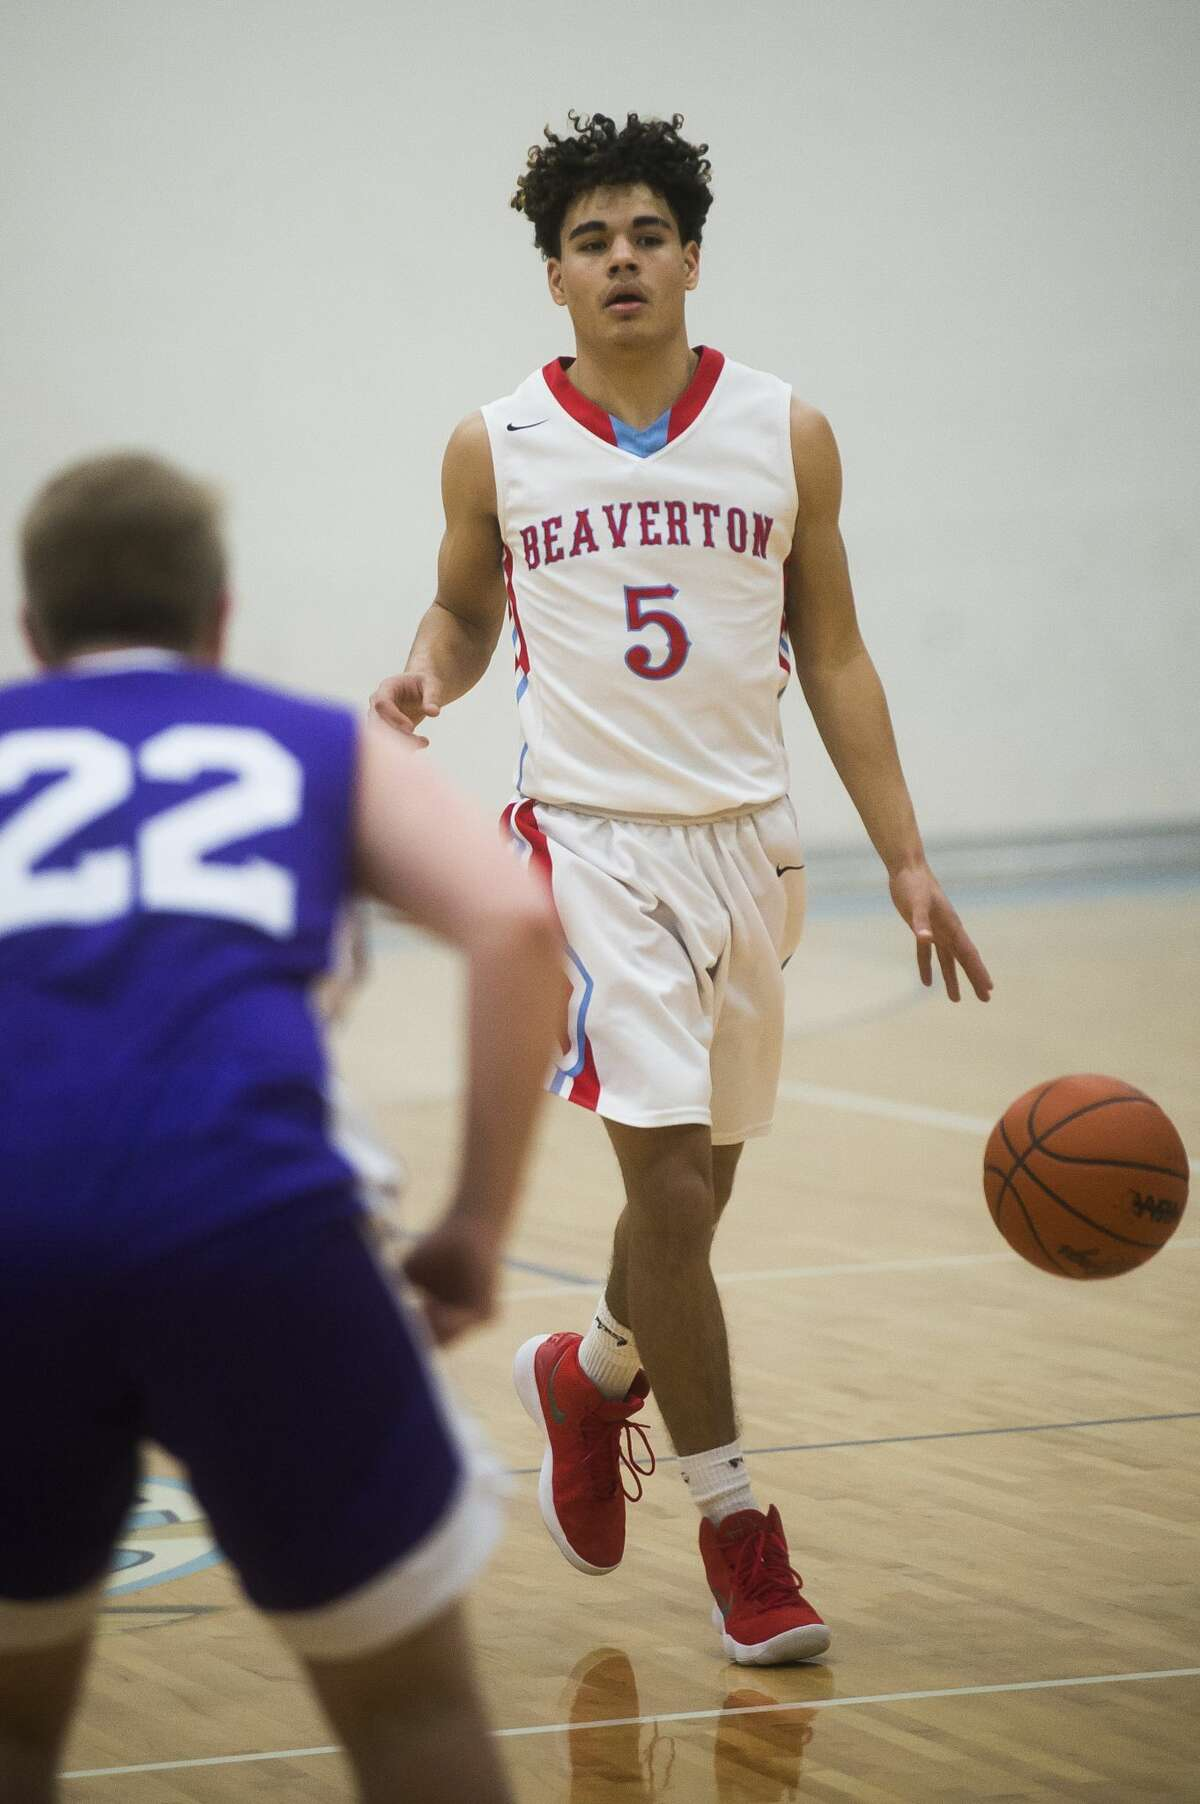 Beaverton senior Nate Taylor dribbles down the court during the Beavers' district semifinals game against Farwell on Wednesday, March 7, 2018 at Meridian High School. (Katy Kildee/kkildee@mdn.net)